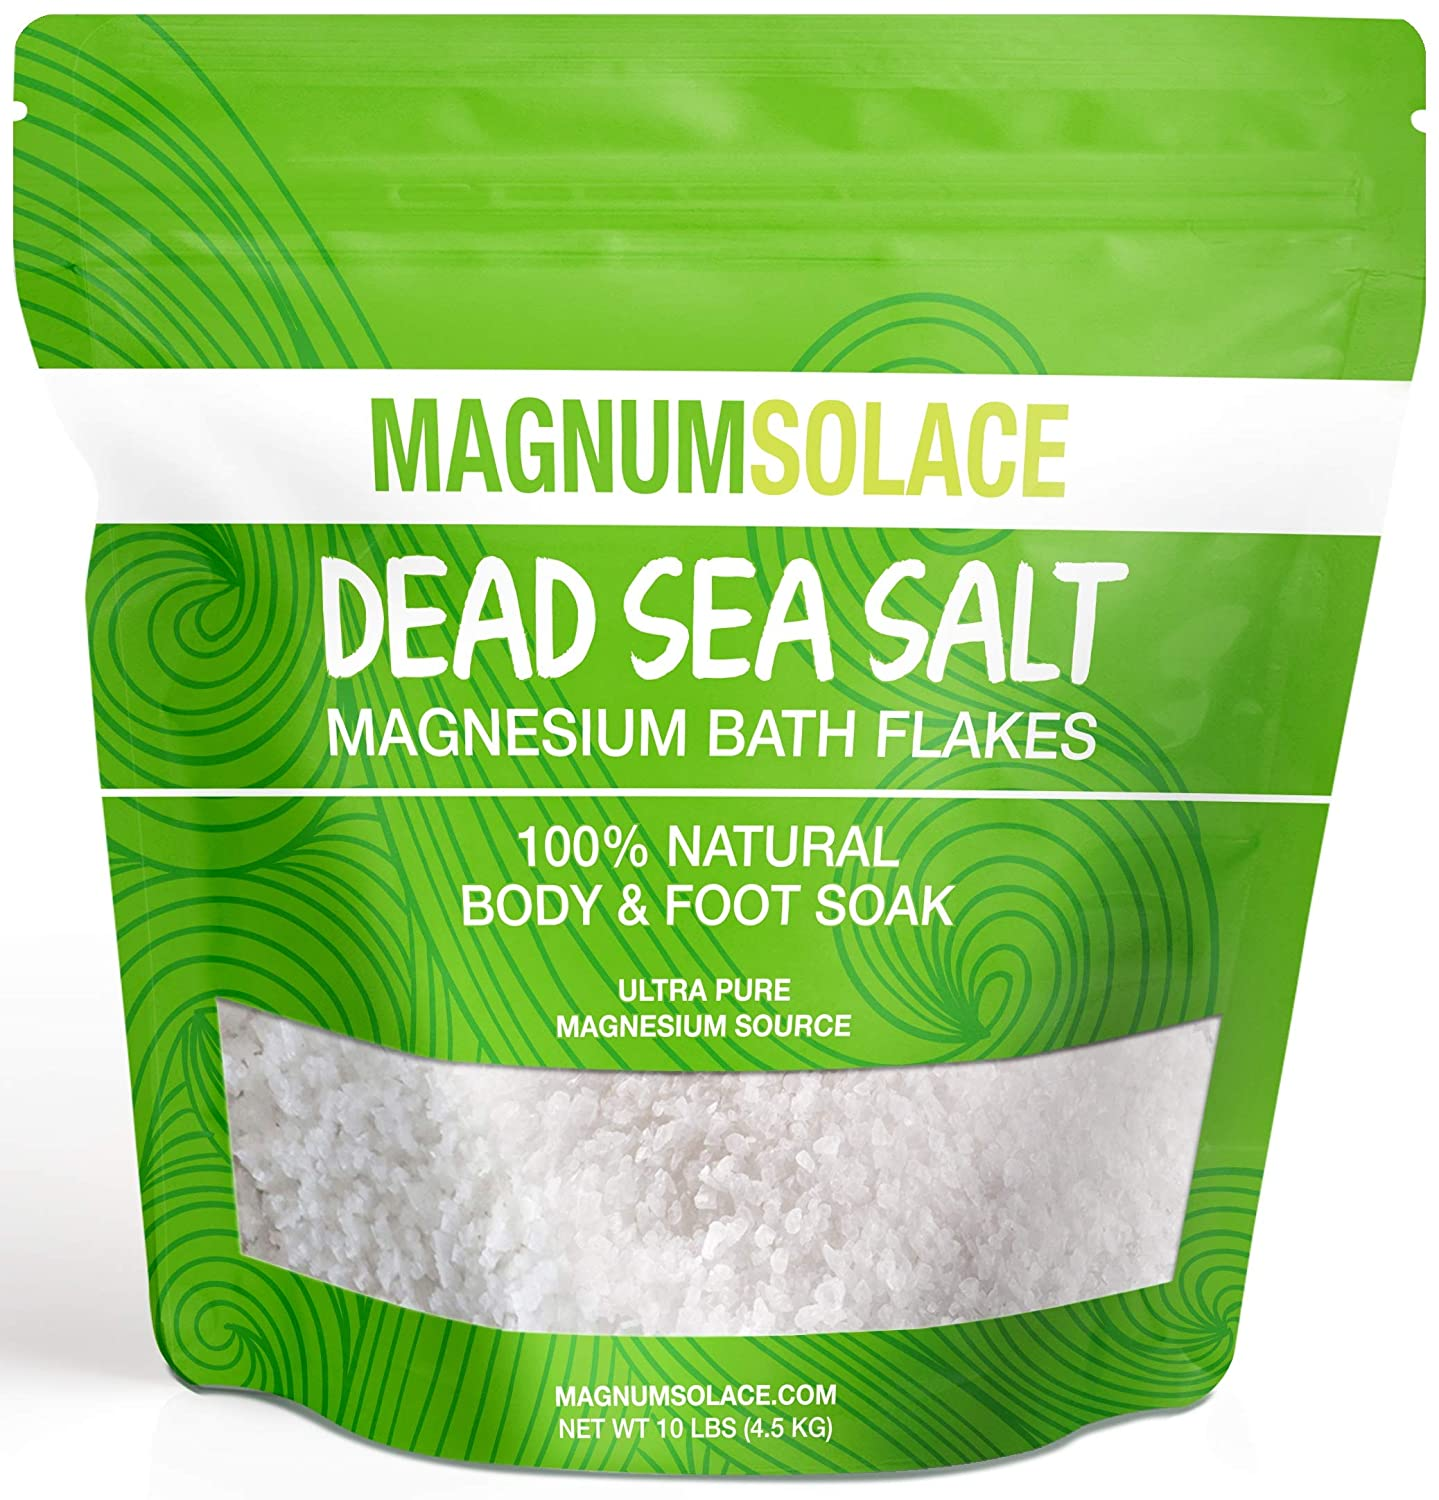 Magnesium Bath Flakes, Large 10 LBS Exceptional #1 Therapeutic Source for Body & Foot Soaks Magnum Solace